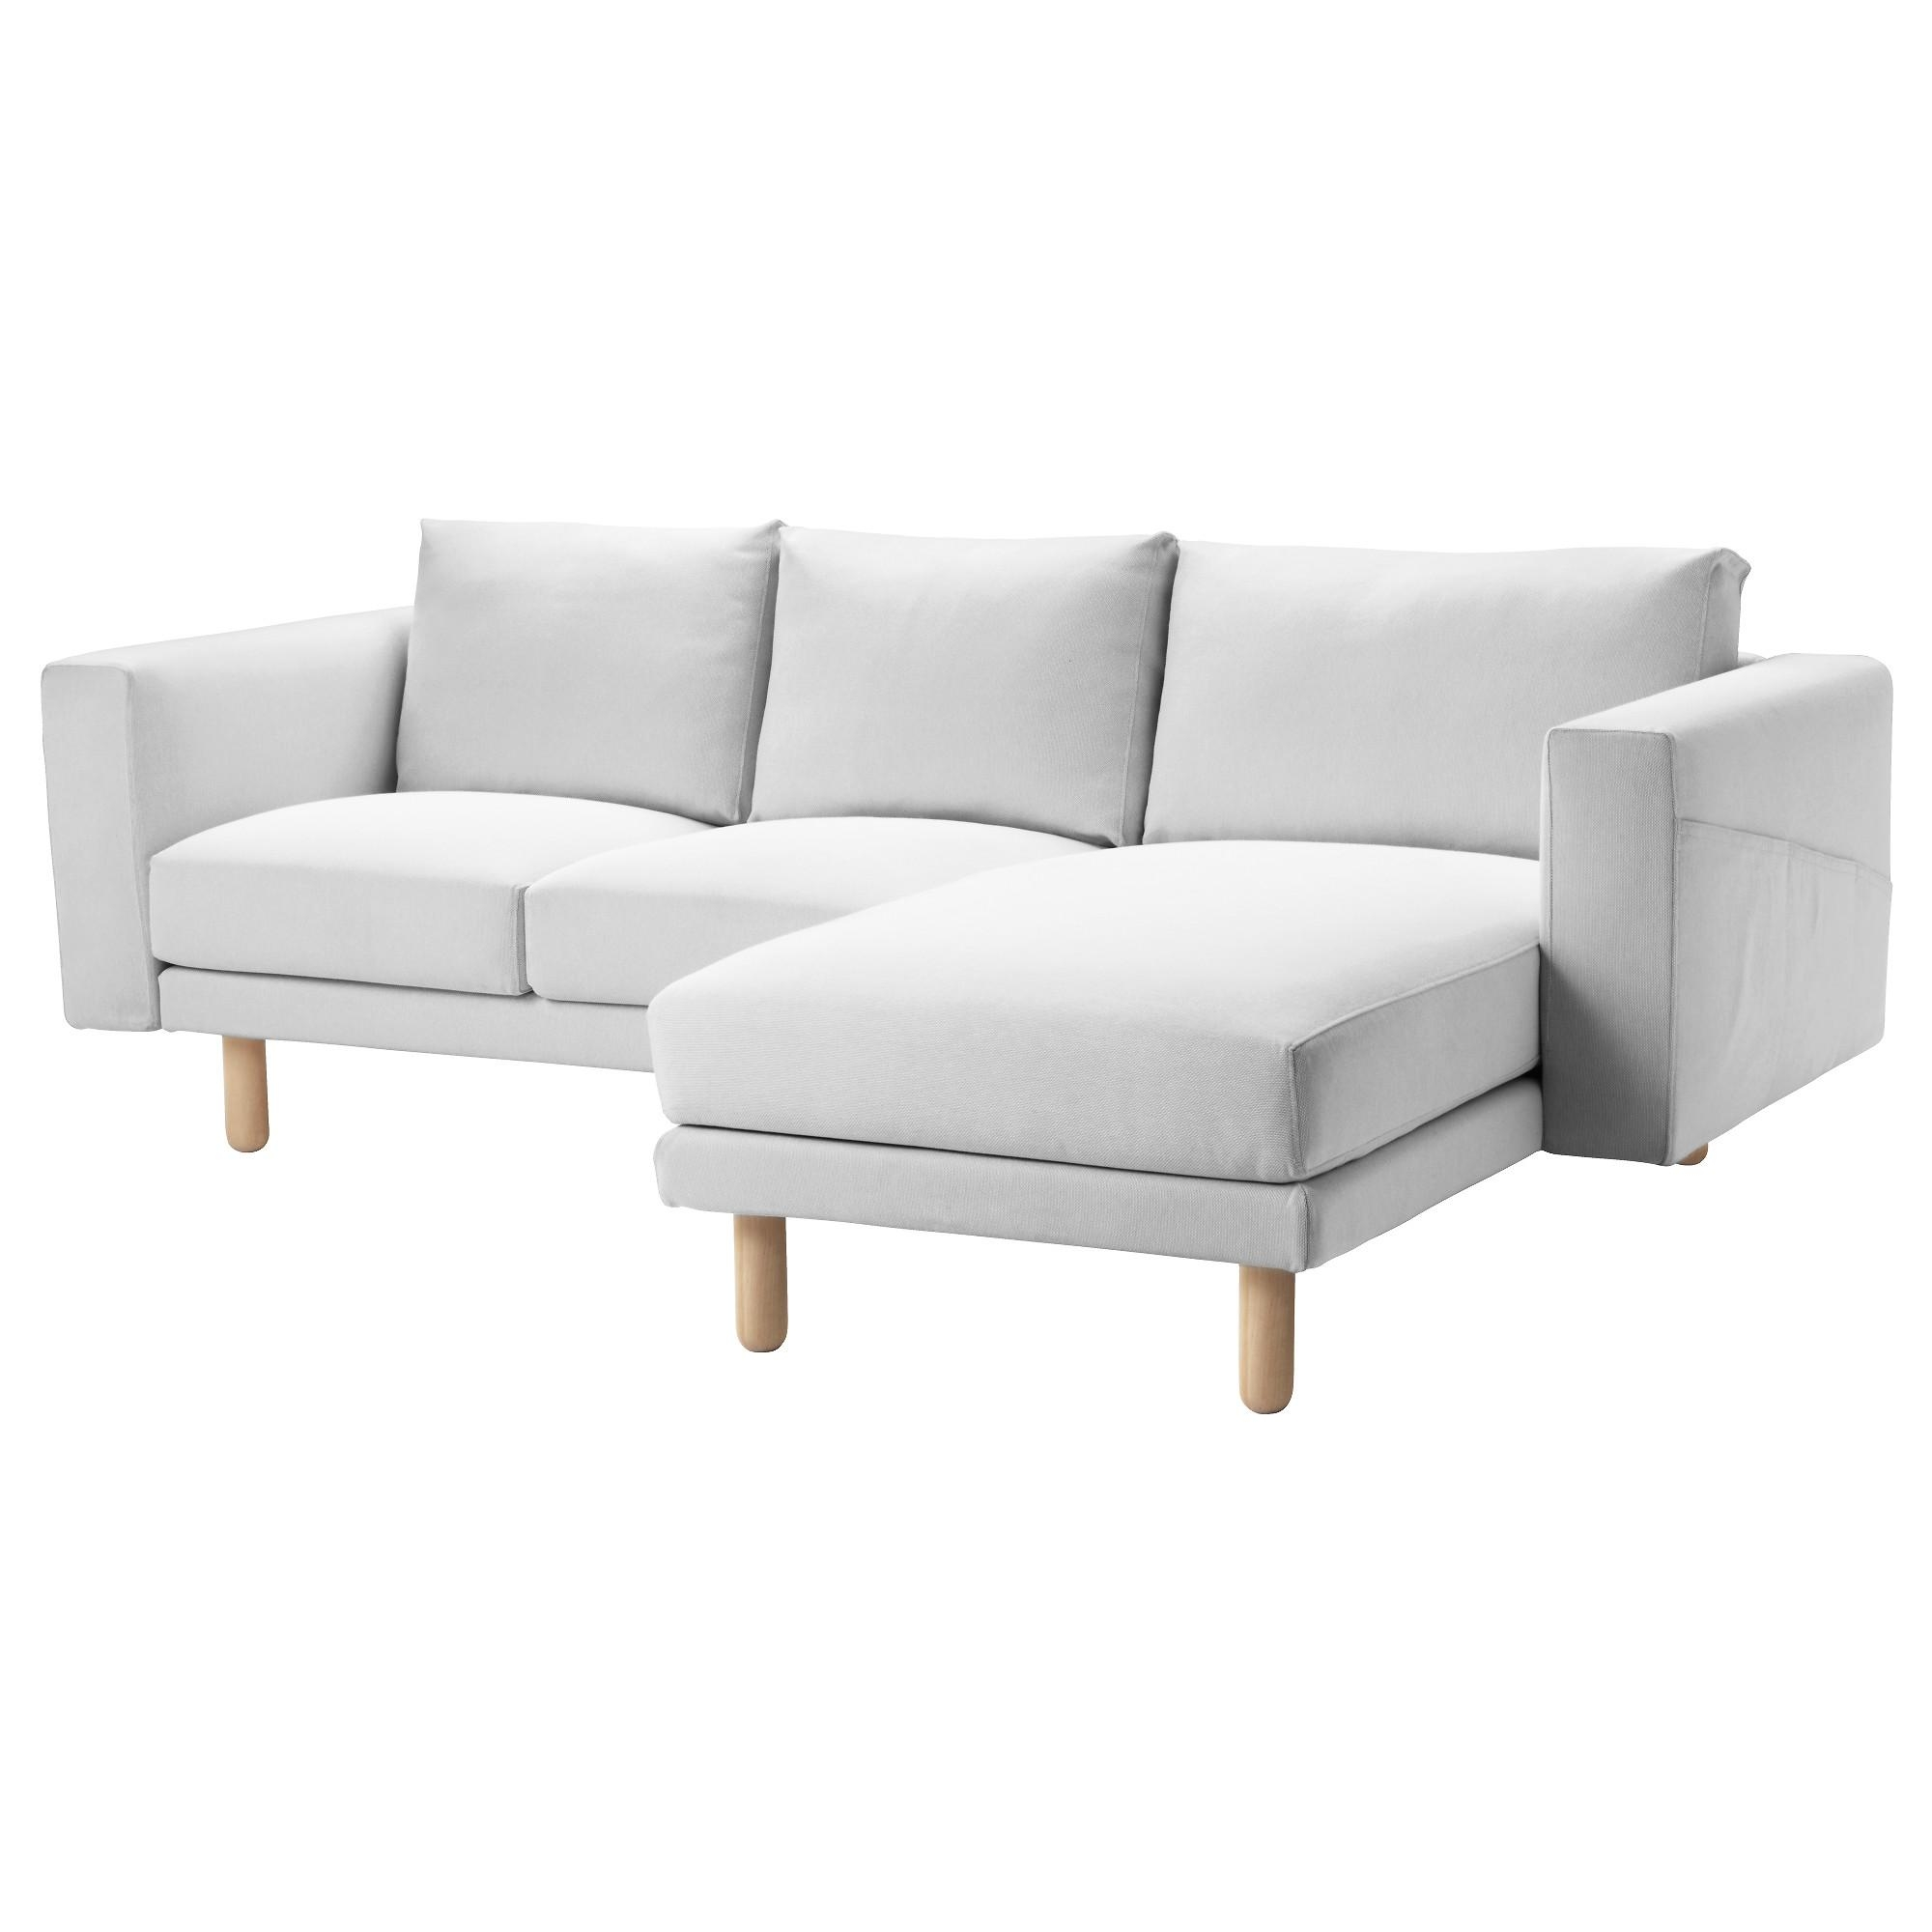 Norsborg 3 Seat Sofa With Chaise Longue/finnsta White/birch – Ikea With Ikea Chaise Lounge Sofa (Image 17 of 20)